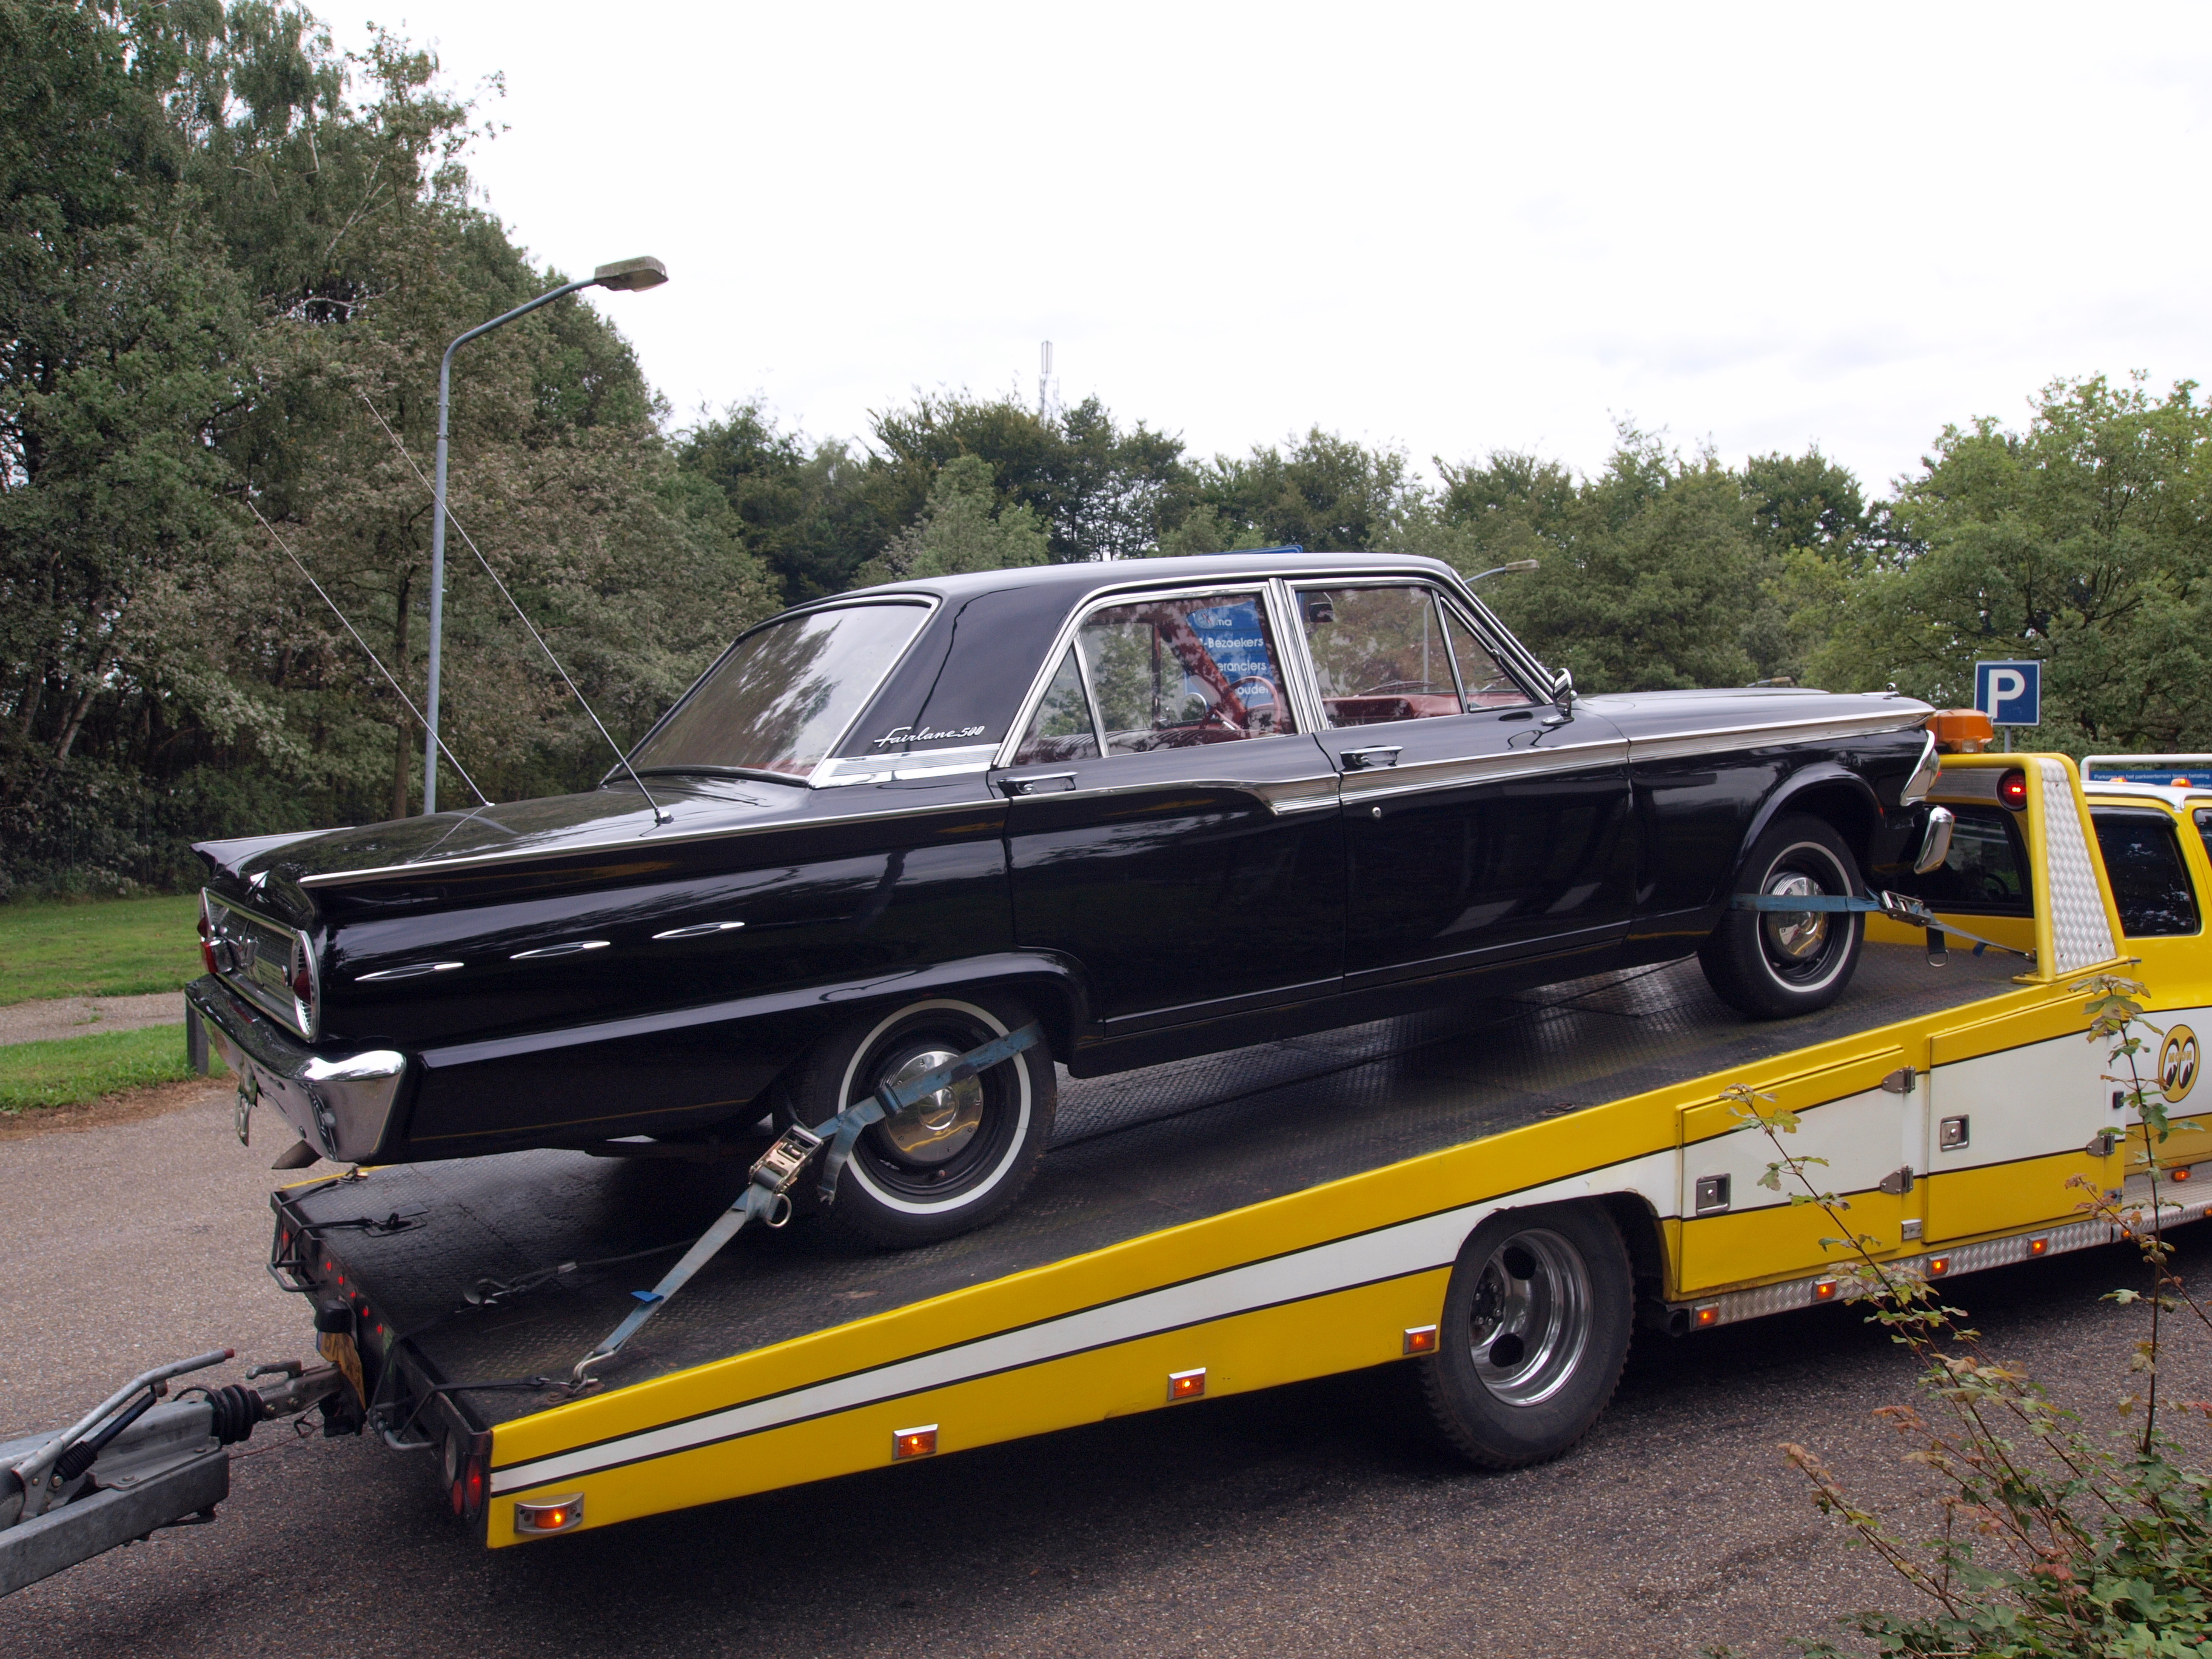 File:1962 Ford Fairlane, Dutch licence registration AE-11-32 pA.JPG ...